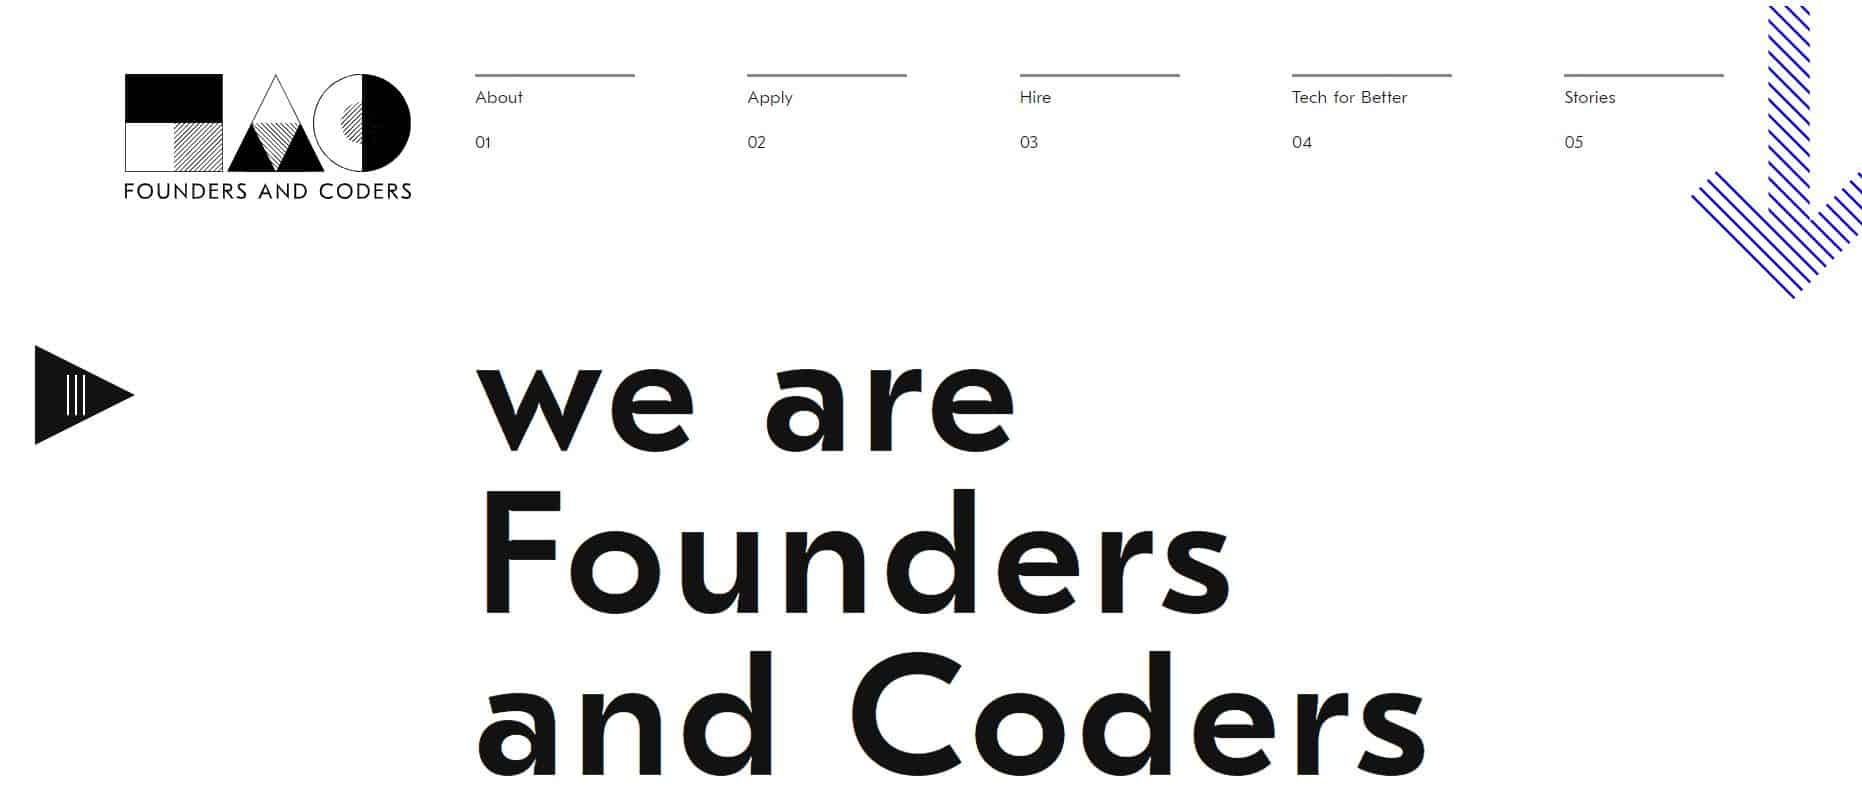 Founders and Coders